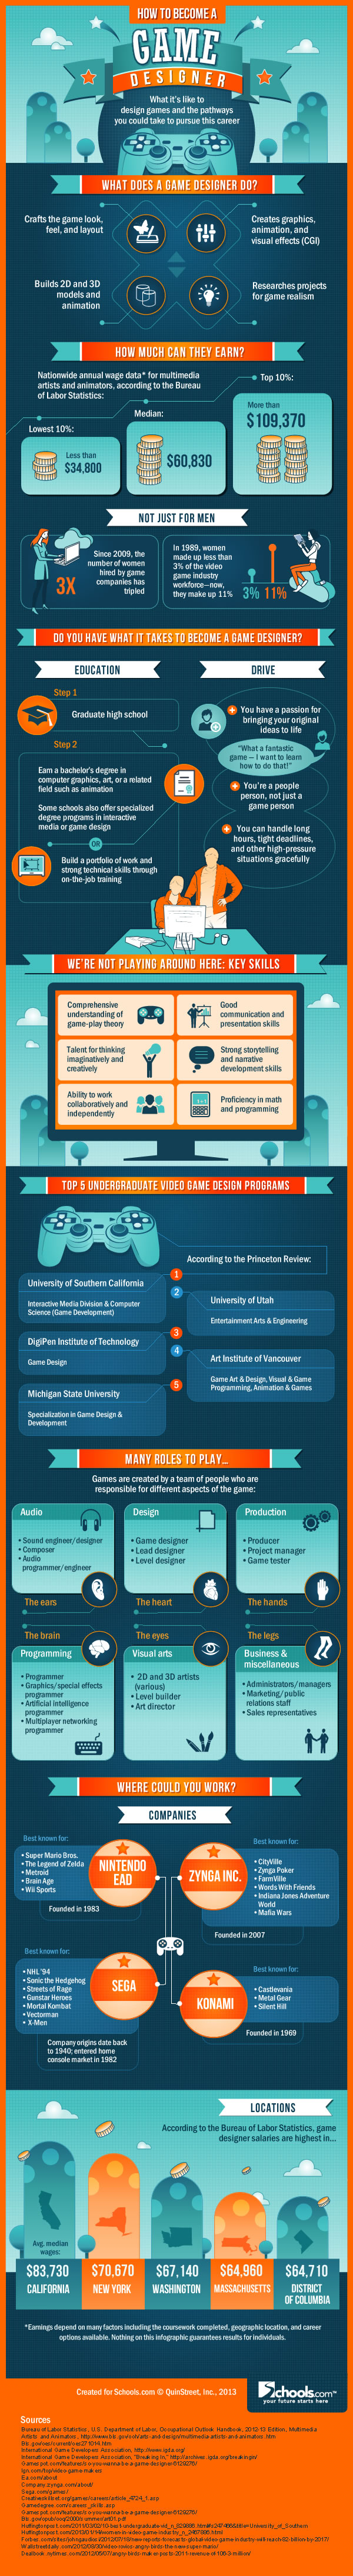 Infographic How to a Game Designer I think.. this